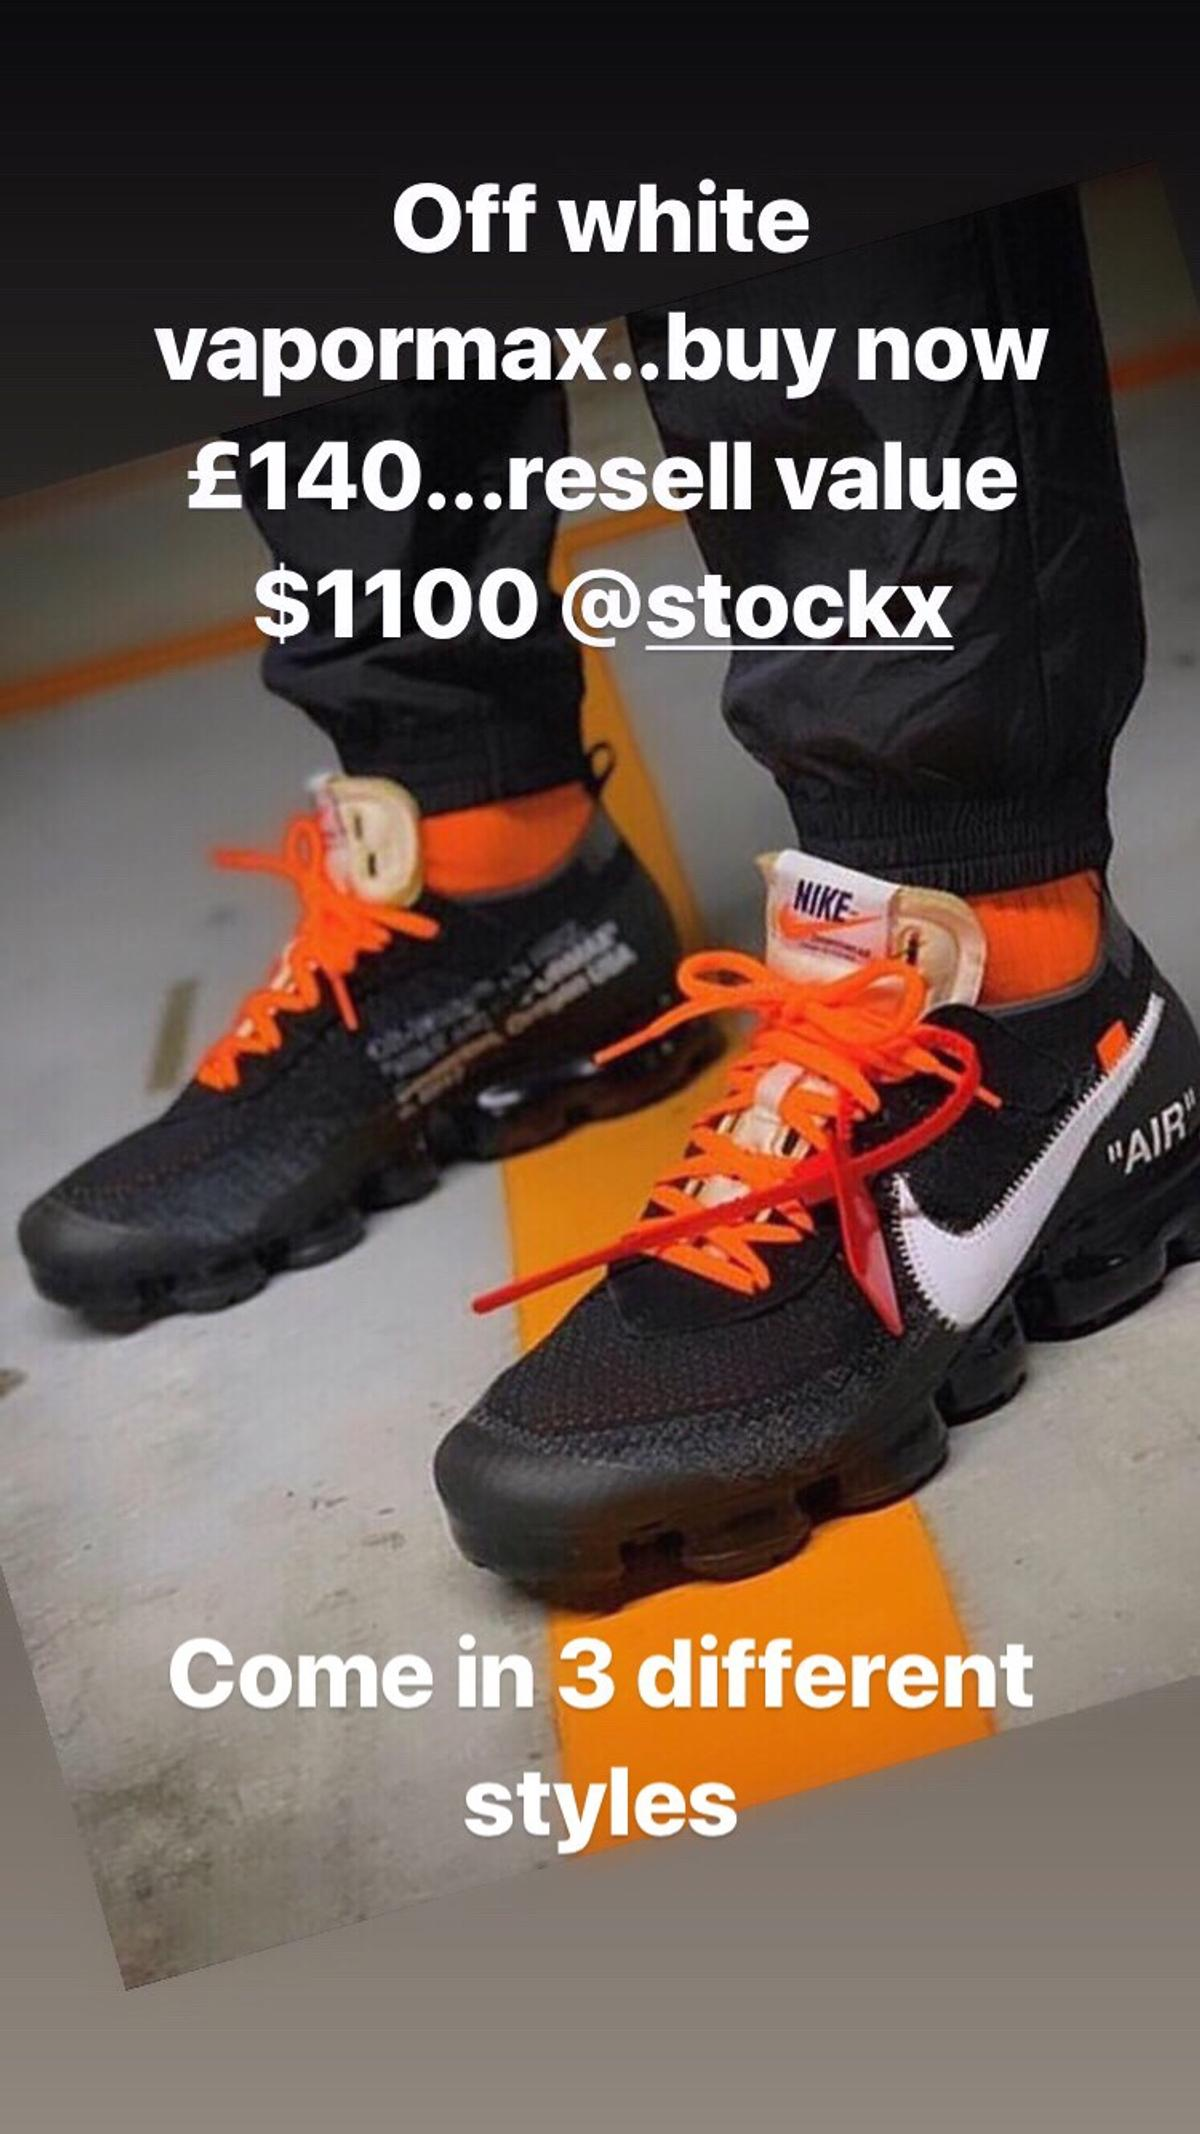 Nike Air Vapormax Off White Flyknit 2 0 in BA2 8HY Peasedown